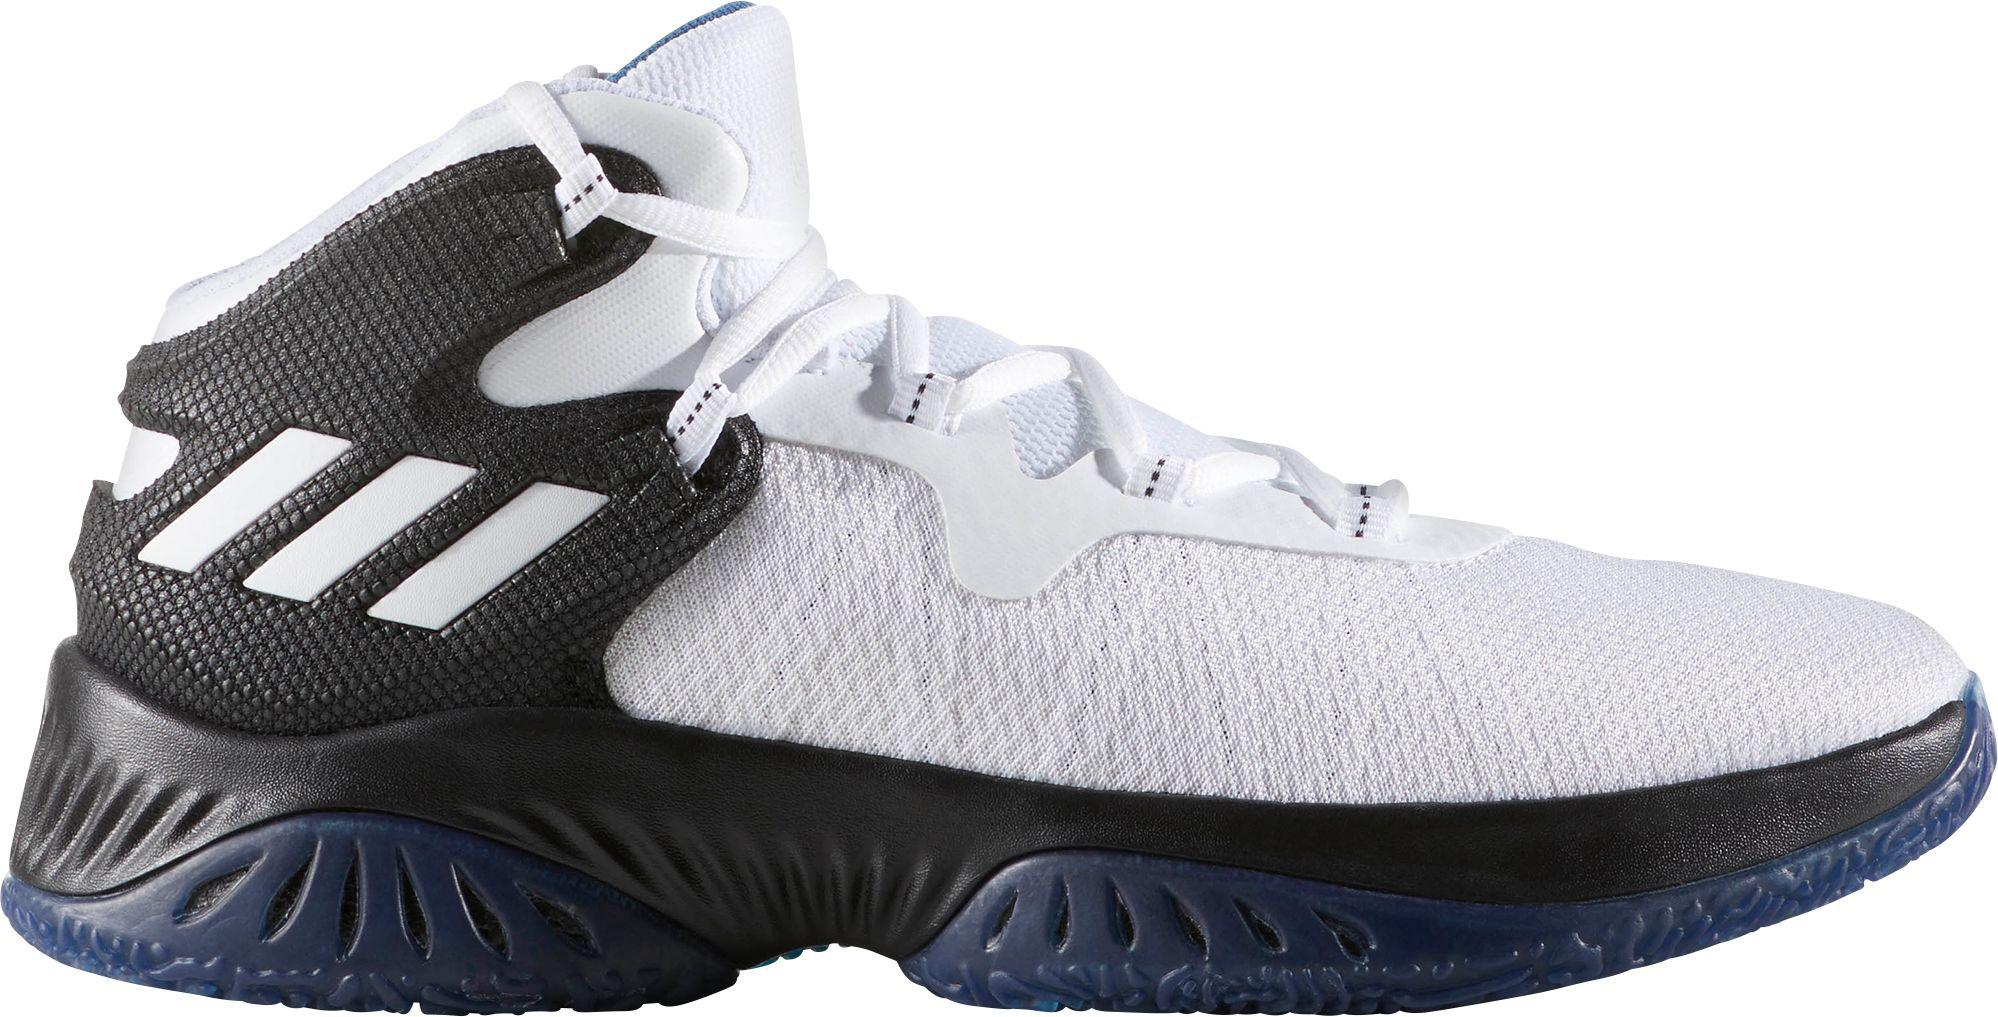 dd61f4c38 Lyst - adidas Explosive Bounce Basketball Shoes in White for Men